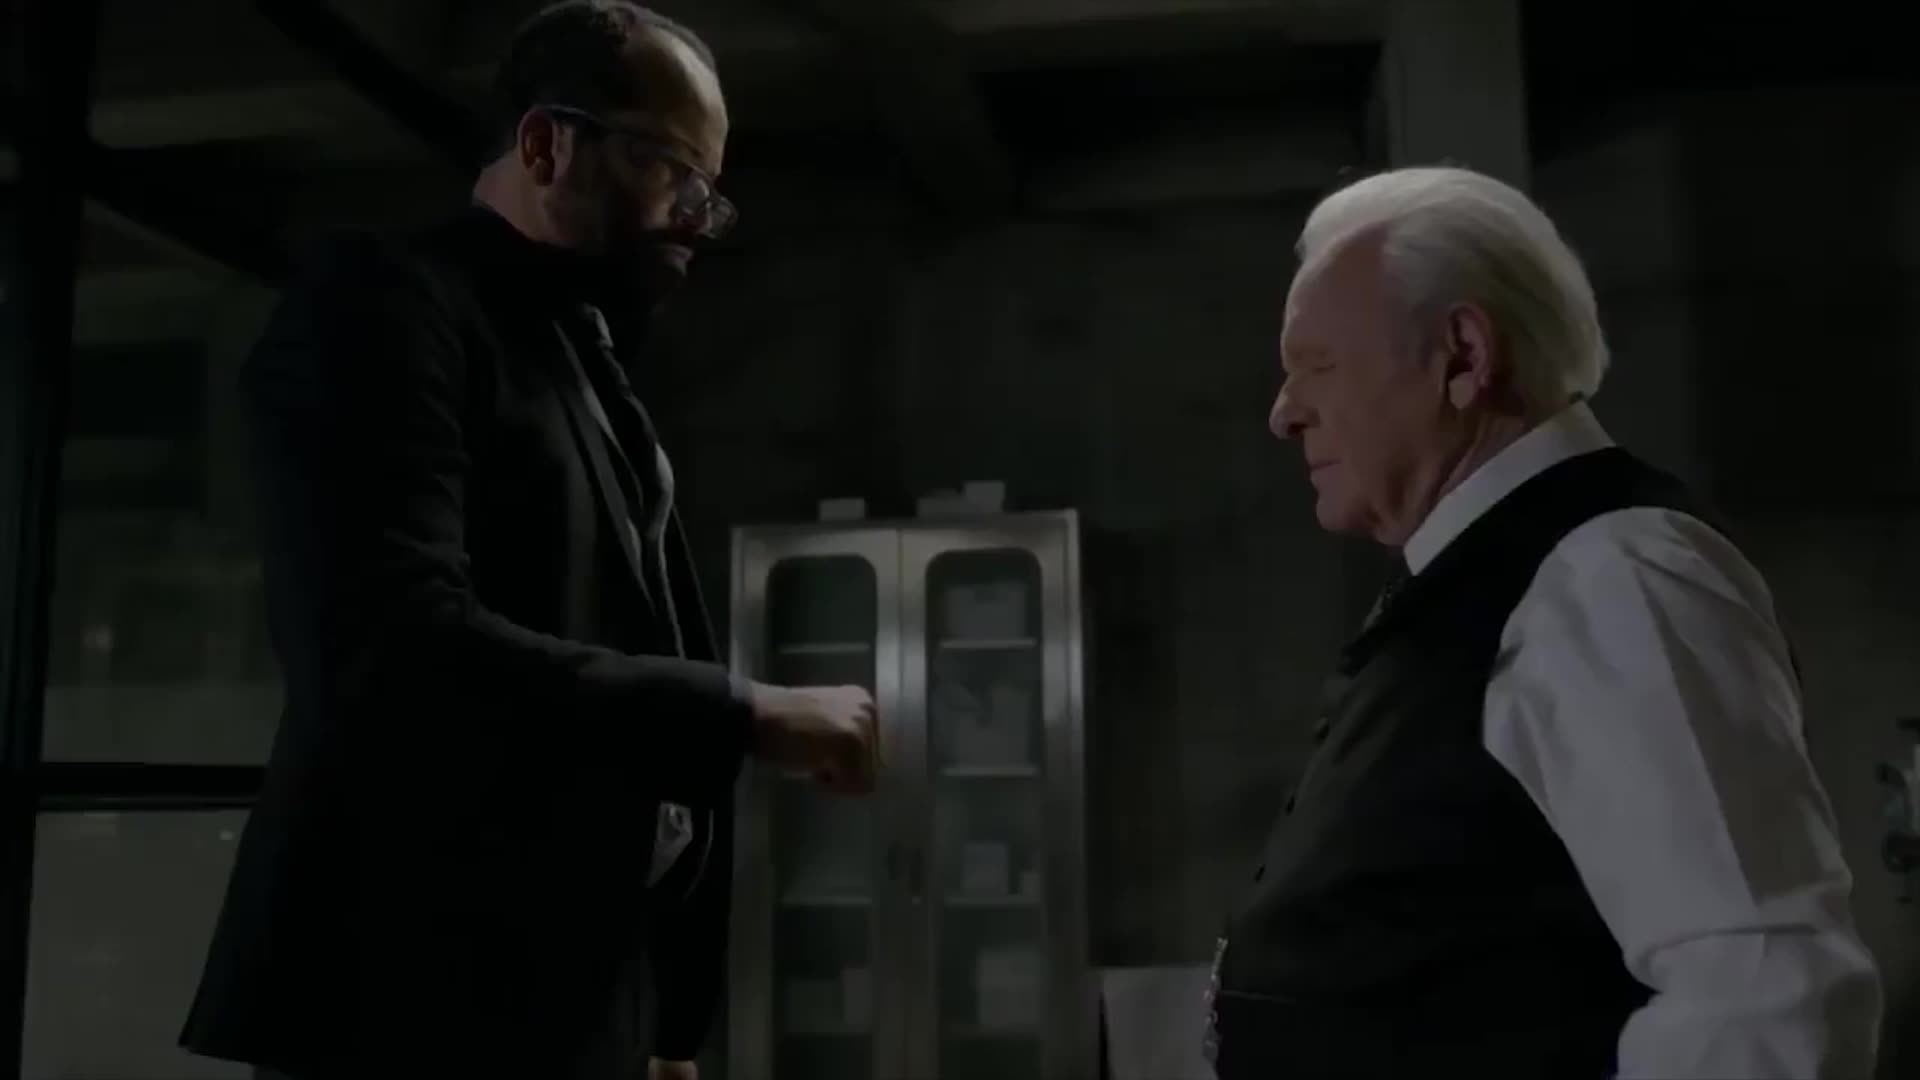 Bloopers, Funny, Gag, HBO, TV, Westworld, Fist Bump GIFs